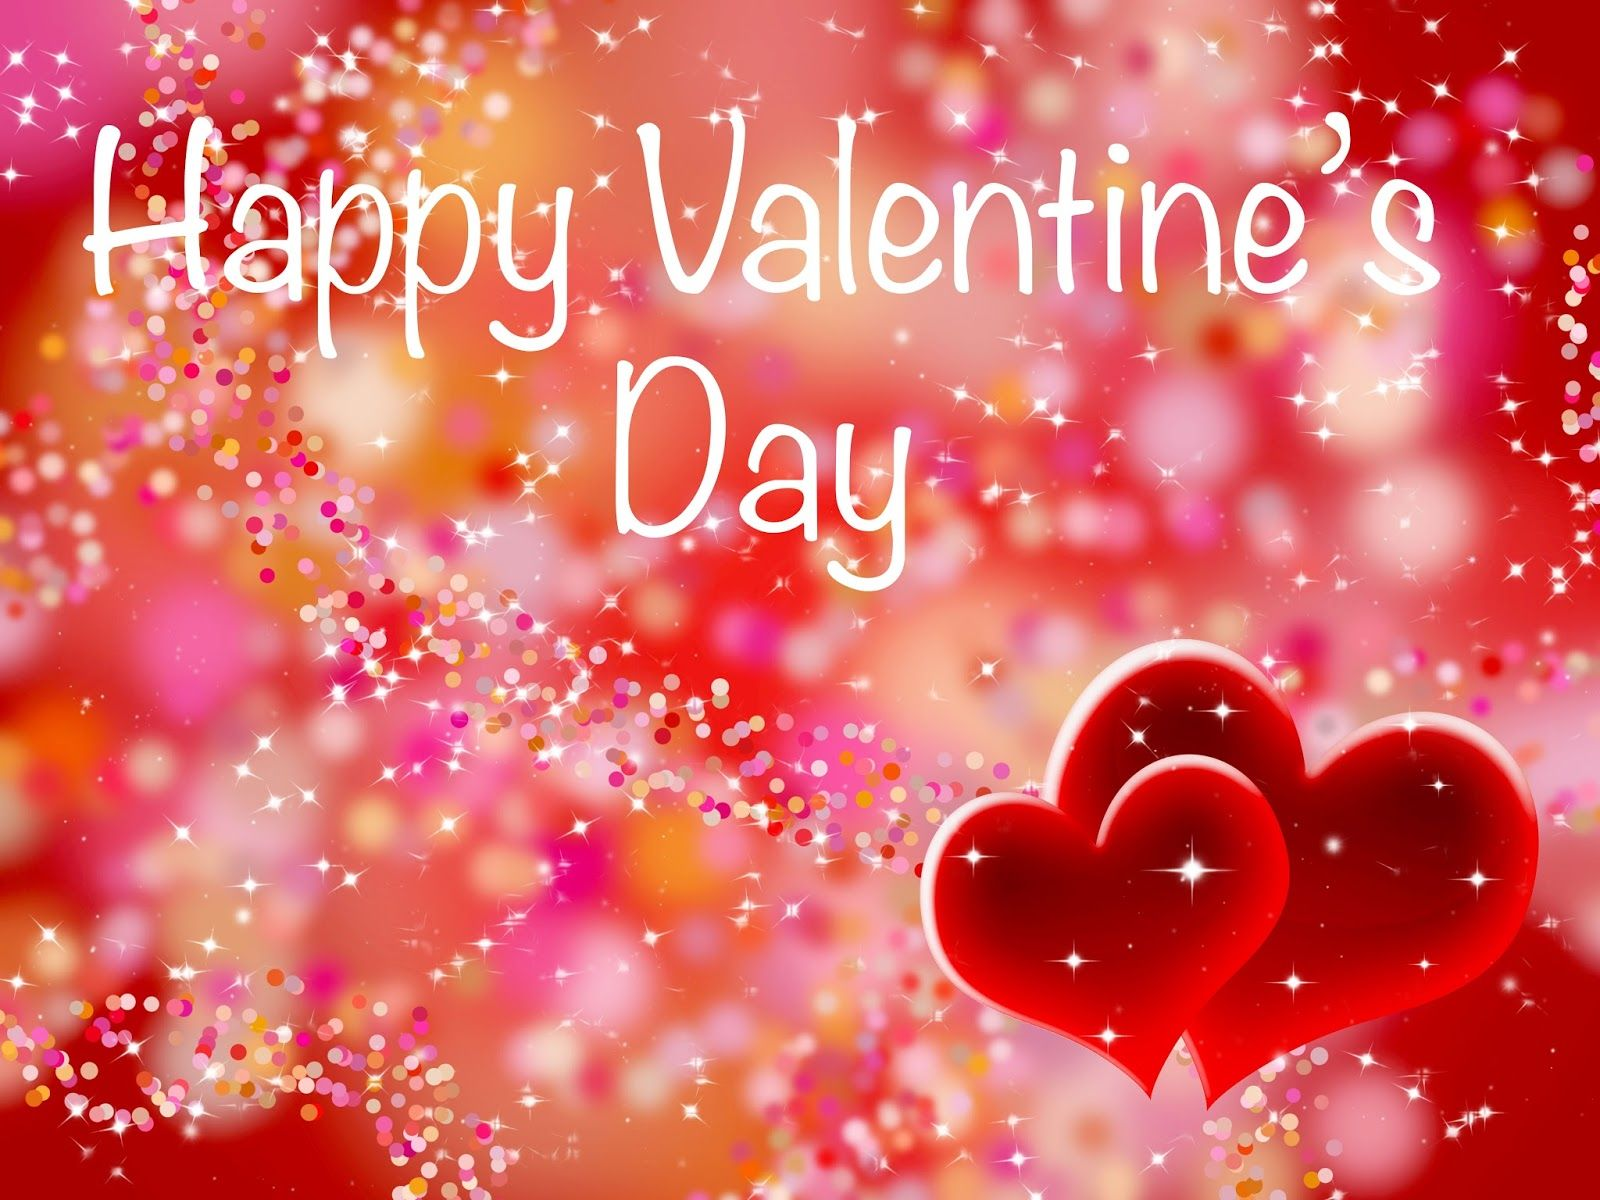 Love Quotes For Valentines Day Cards Happy Valentines Day 2017 Quotes  Hey There Are You Looking For